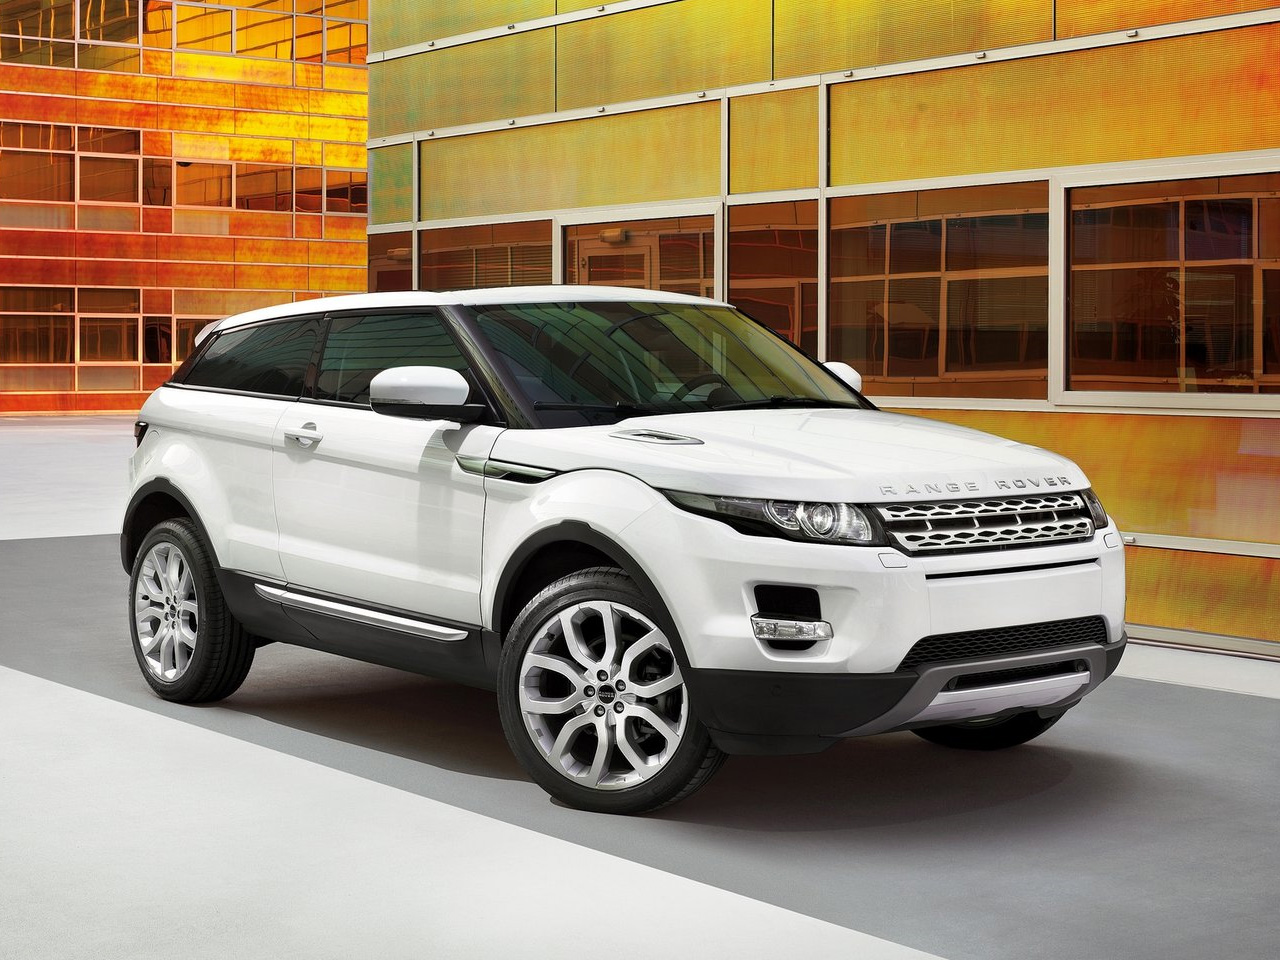 Land Rover Evoque 15 Free Car Wallpaper